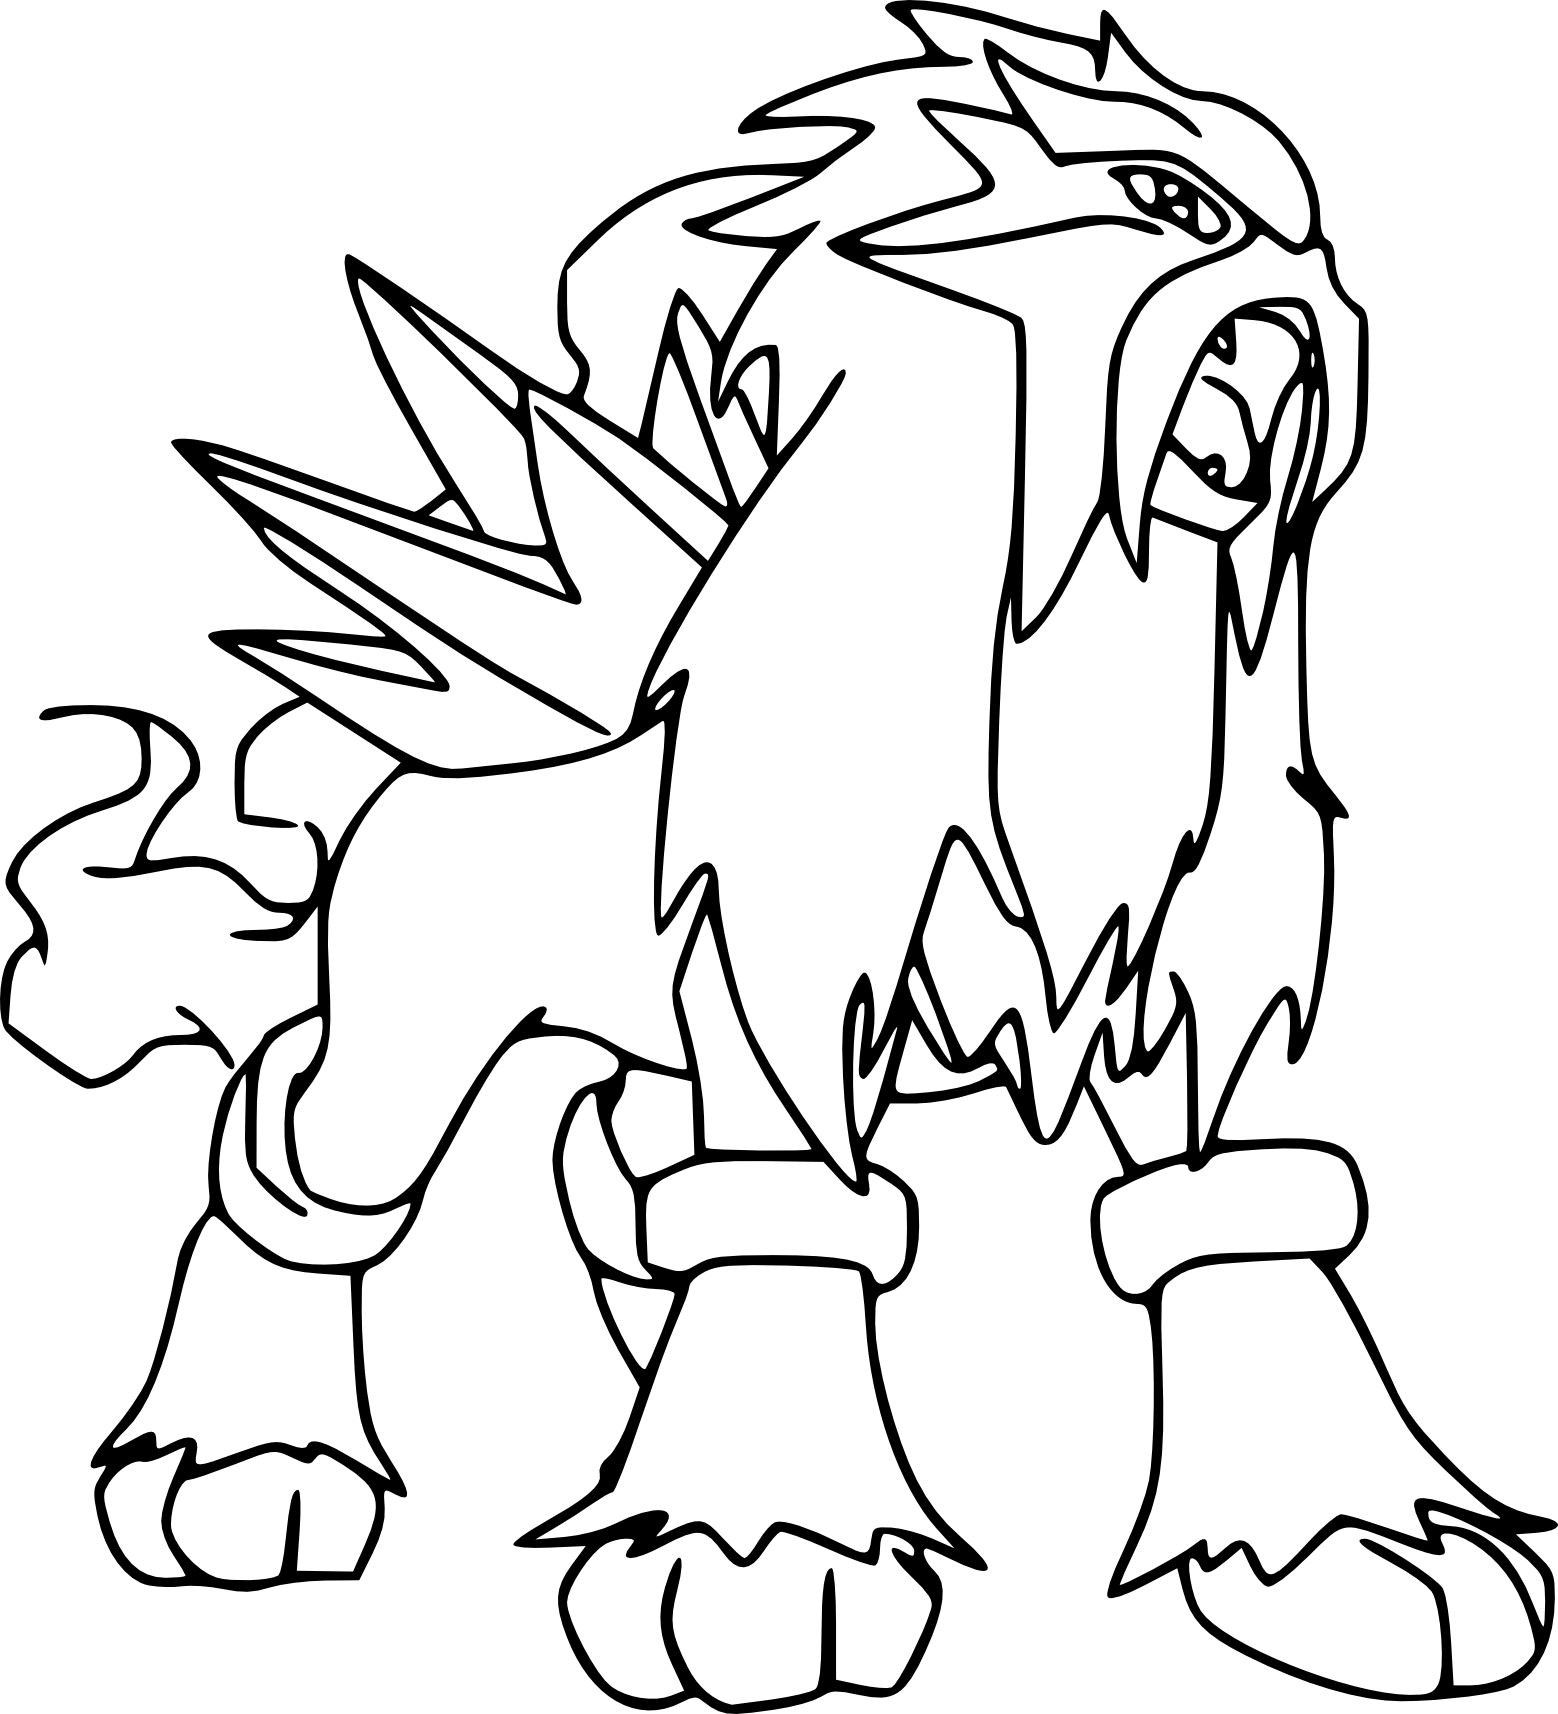 Coloriage Pokemon A Colorier Dessin A Imprimer Pokemon